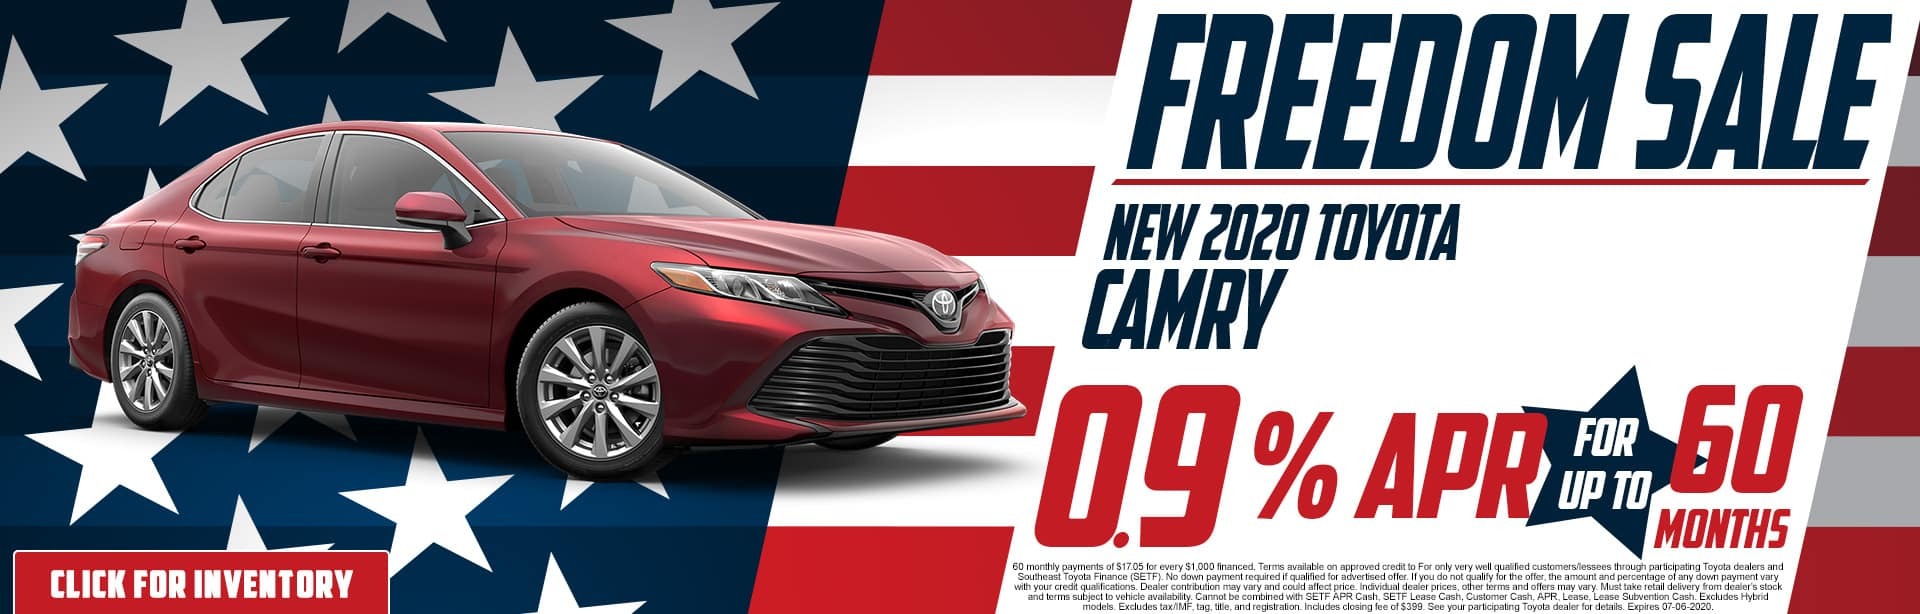 2020 Toyota Camry | 0.9% APR for 60 Months